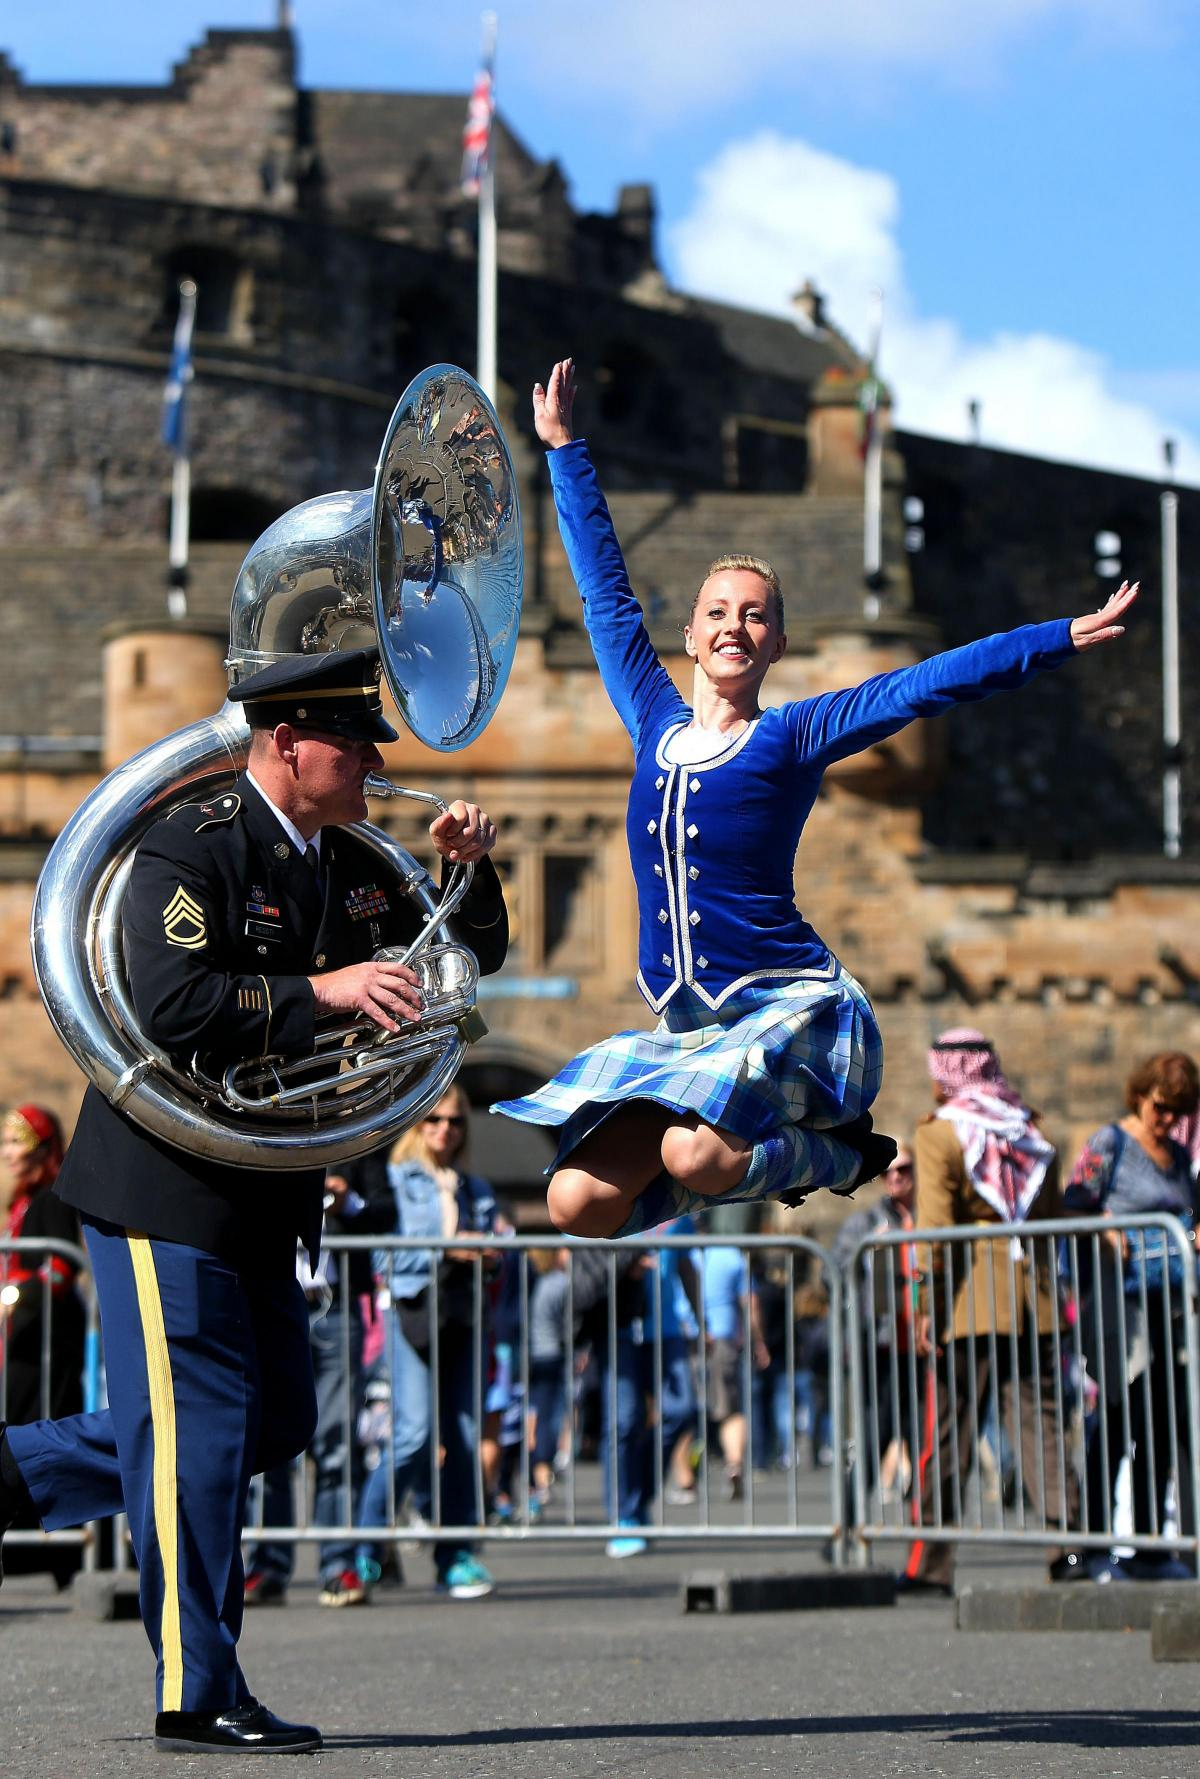 Edinburgh tattoo in its 66th year will celebrate worlds glorious edinburgh tattoo in its 66th year will celebrate worlds glorious differences malvernweather Image collections